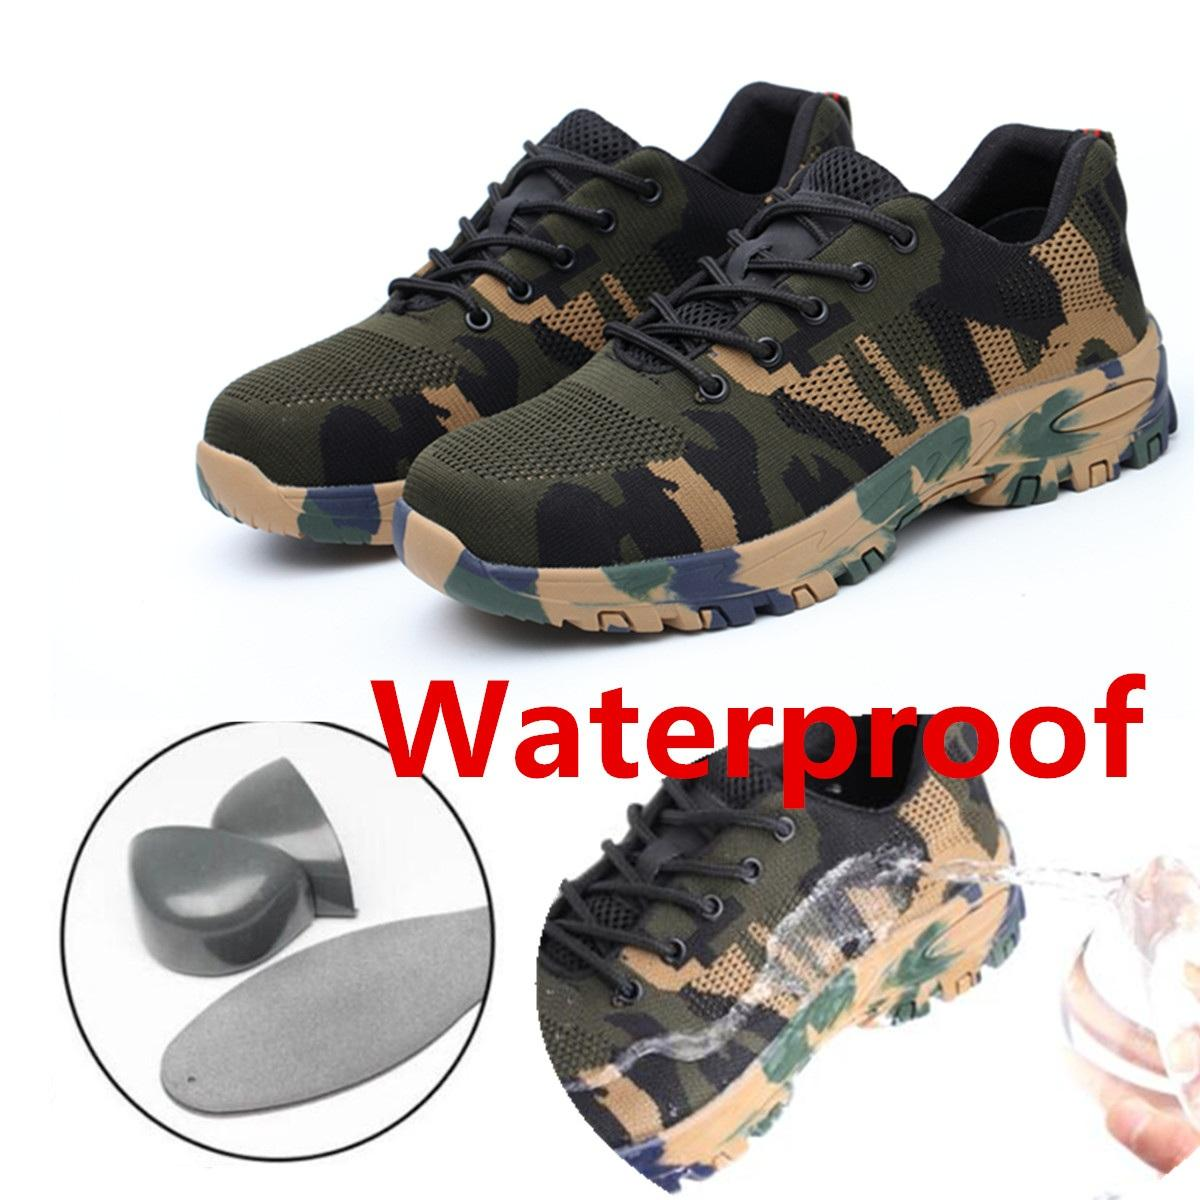 2020 New Fashion Steel Toe Sneakers Fiber Safety Shoes Breathable Steel Toe Work Shoes for Men - 10